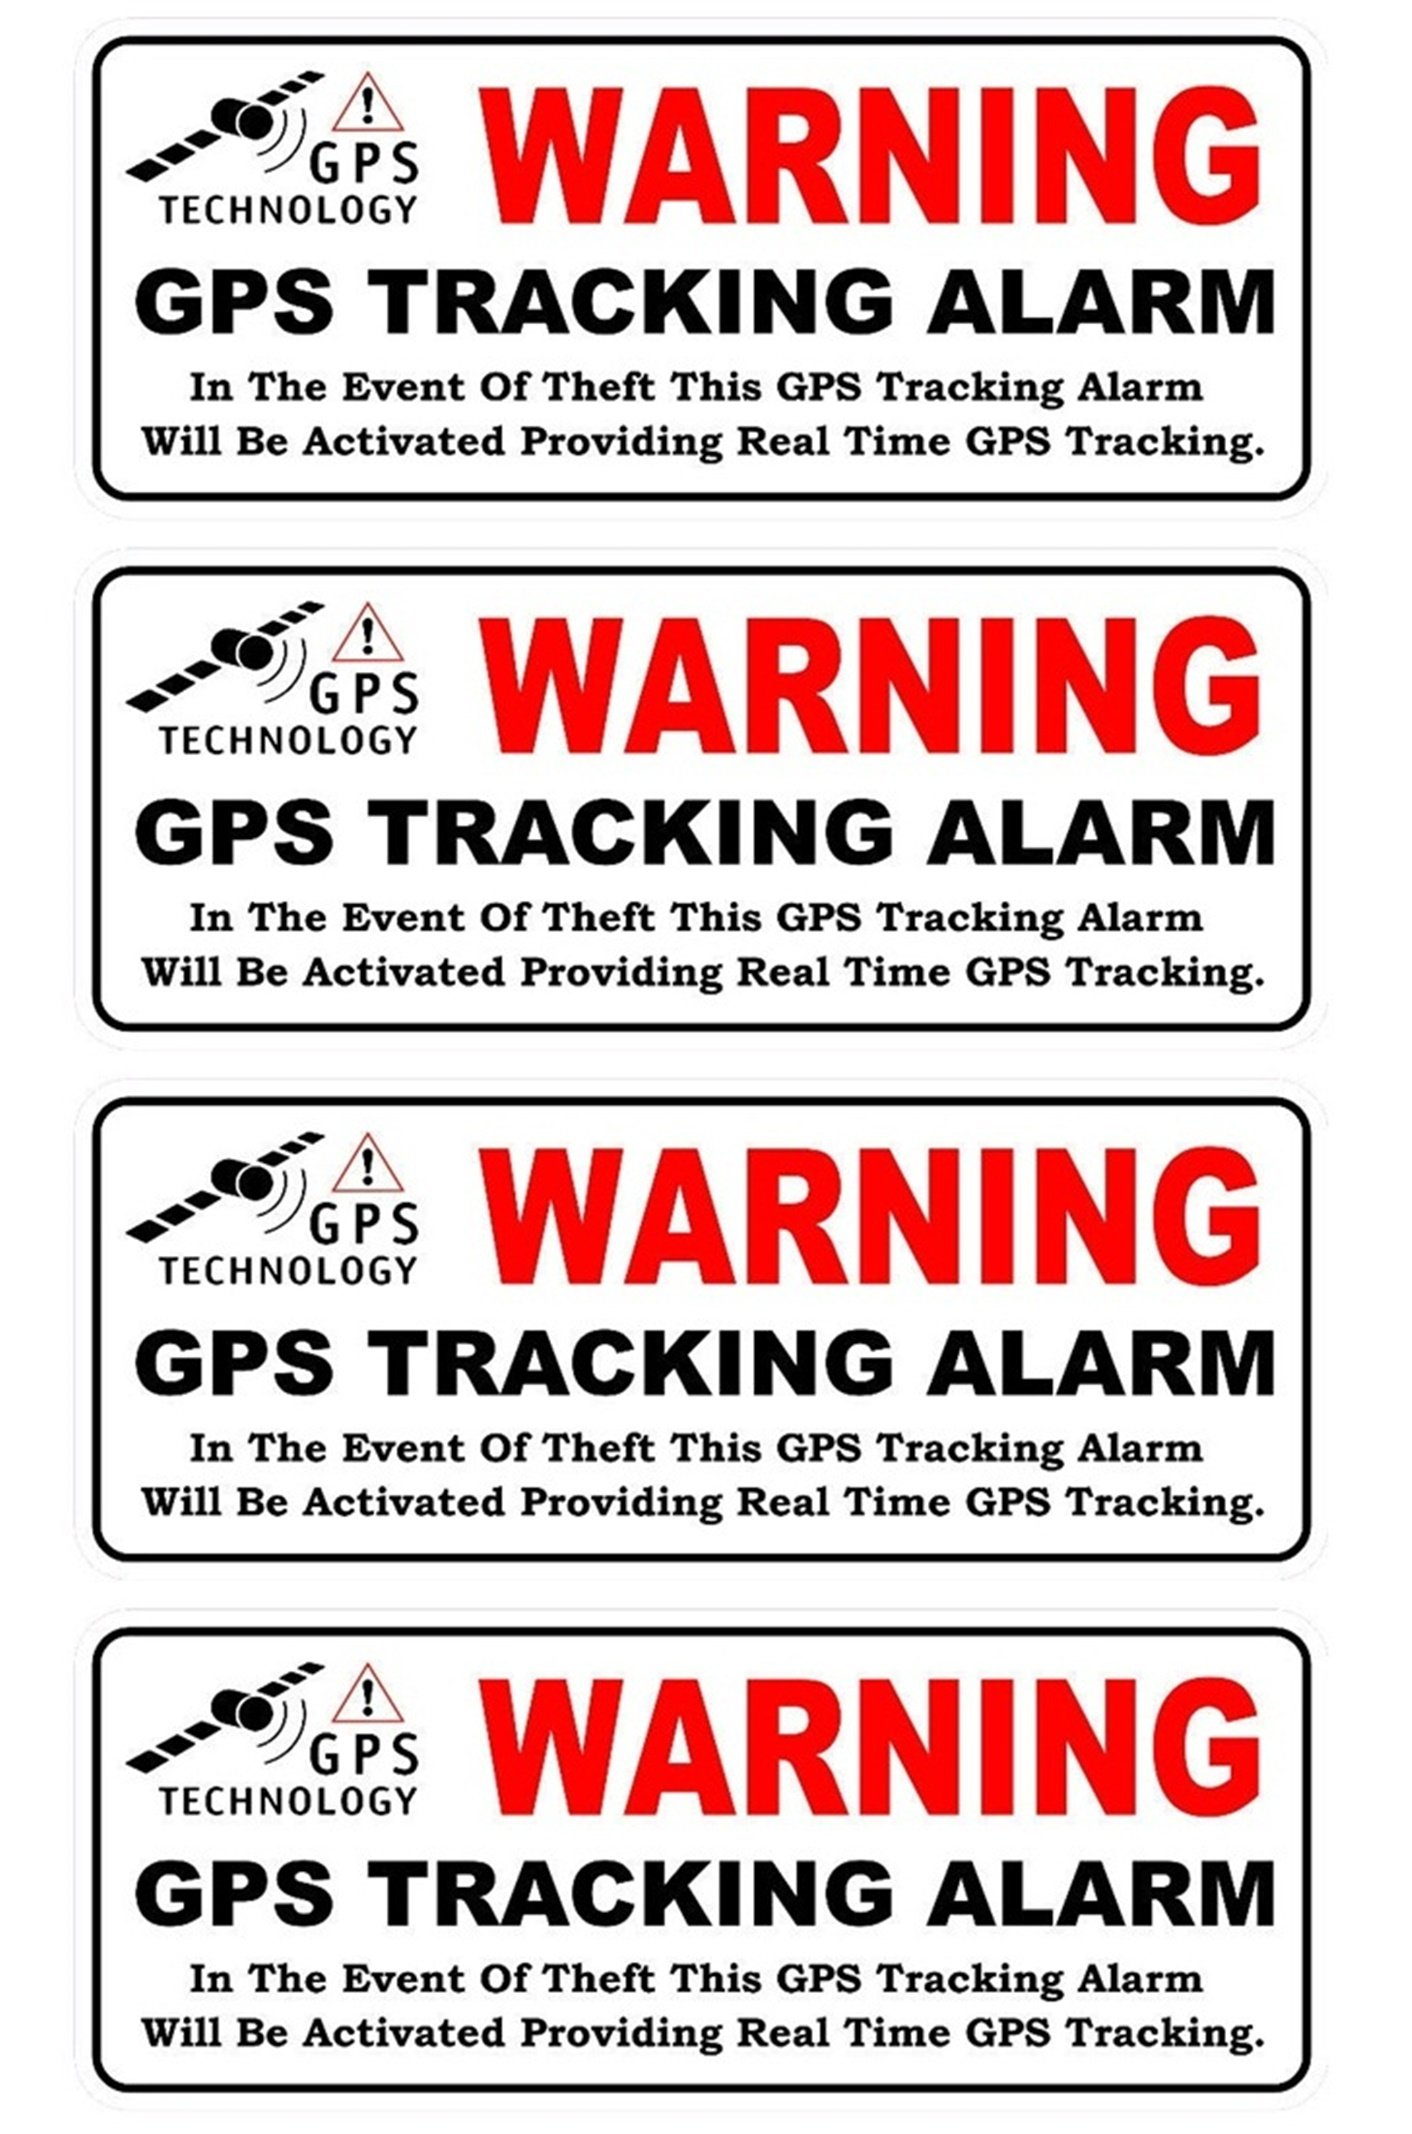 4 Pc Glittering Unique Warning GPS Tracking Alarm Technology In The Event of Theft This Will be Activated Providing Real Time Back Adhesive Stickers Sign Surveillance Trespassing Signs Size 4.5''x1.5''